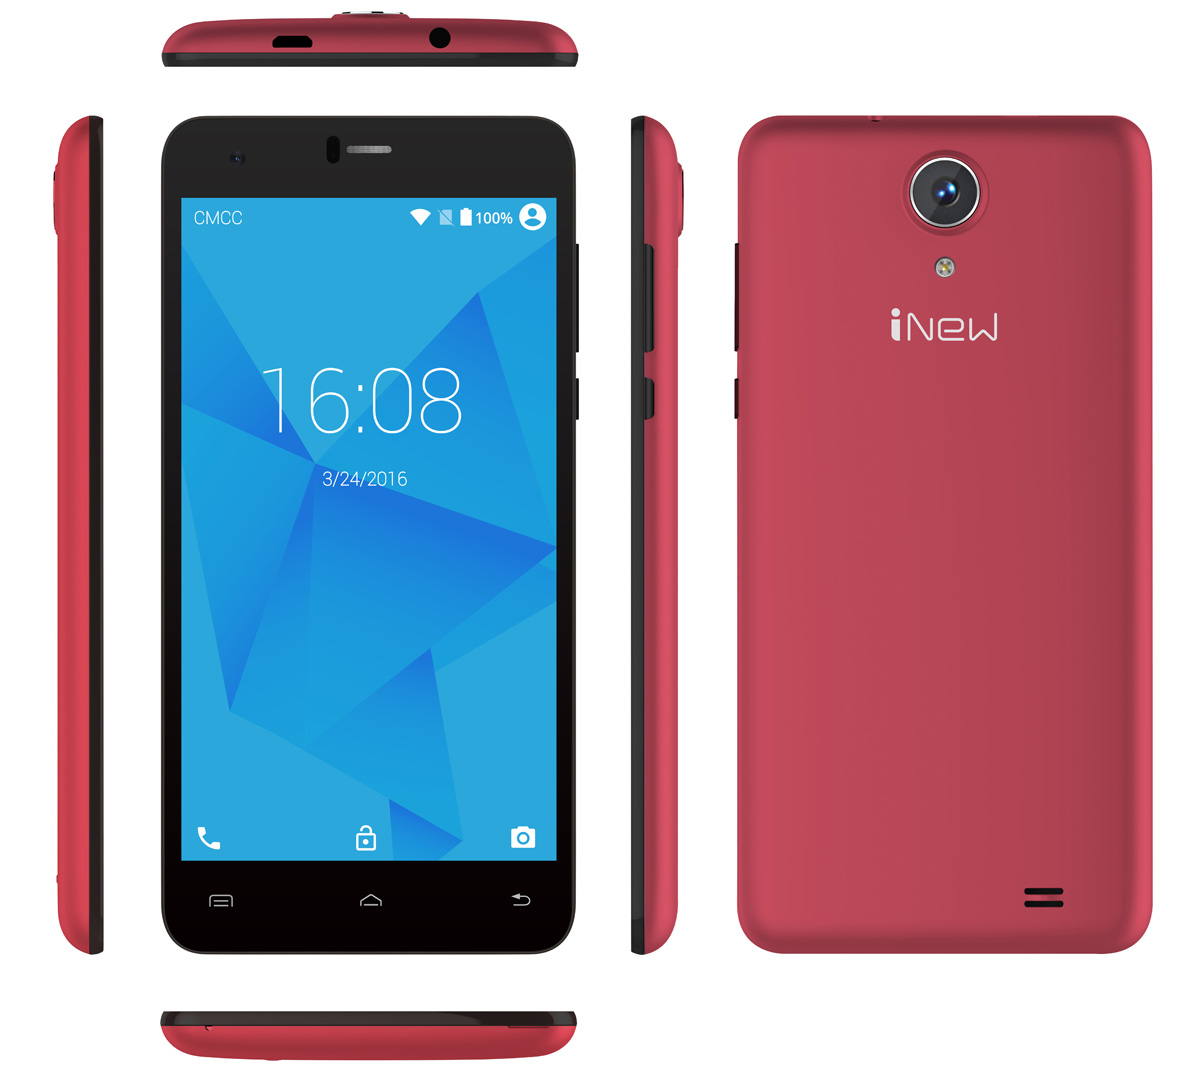 iNew U8W Android 5.1 5.5 inch 2.5D Arc Screen 3G Phablet MTK6580 1.3GHz Quad Core 1GB RAM 8GB ROM GPS Light Sensor Bluetooth 4.0